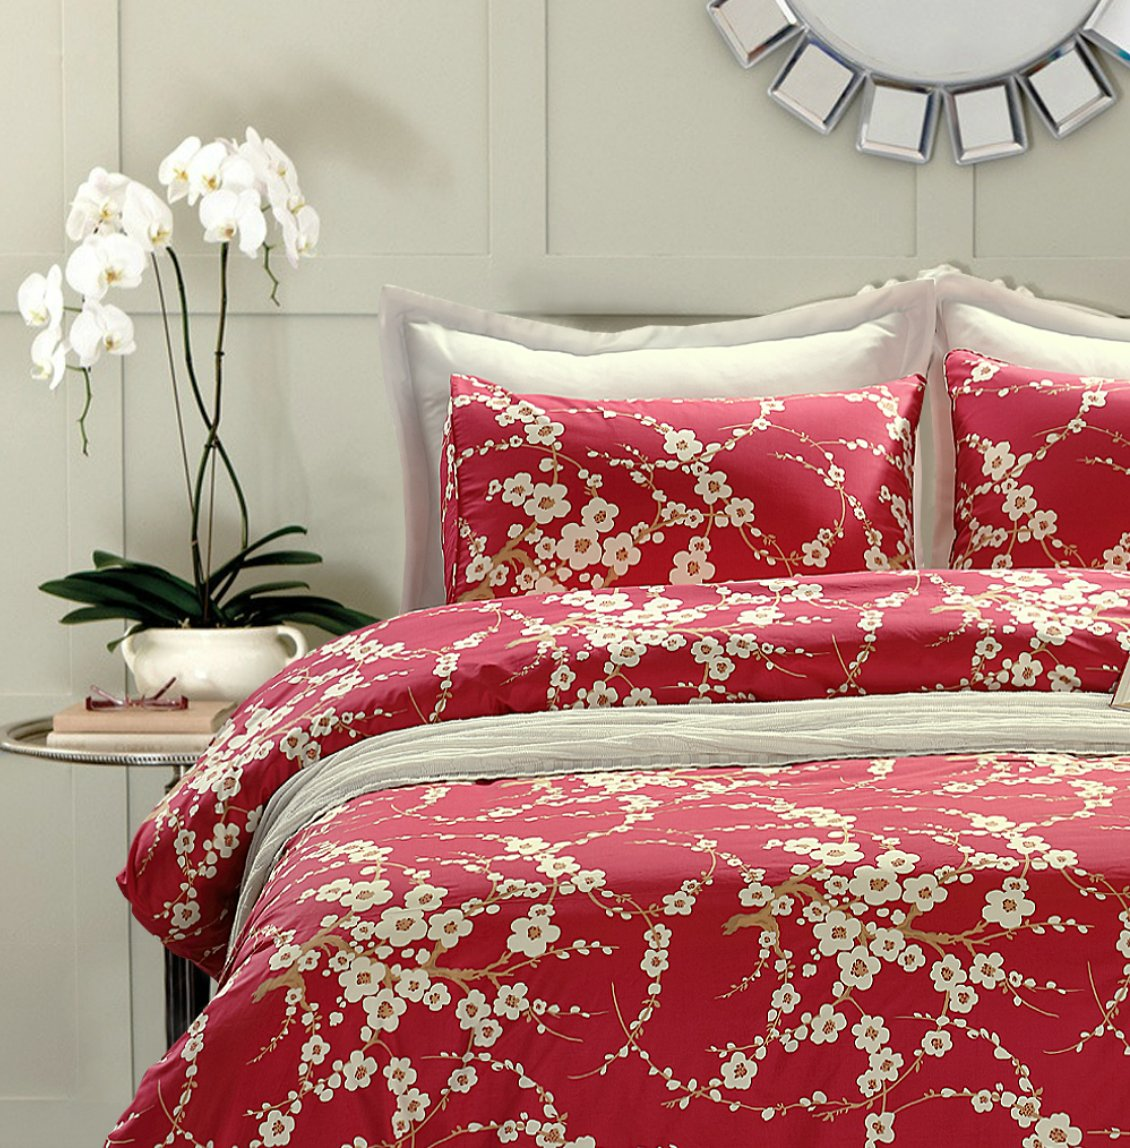 Oriental comforters bedspread sets ease bedding with style for Designer inspired bedding